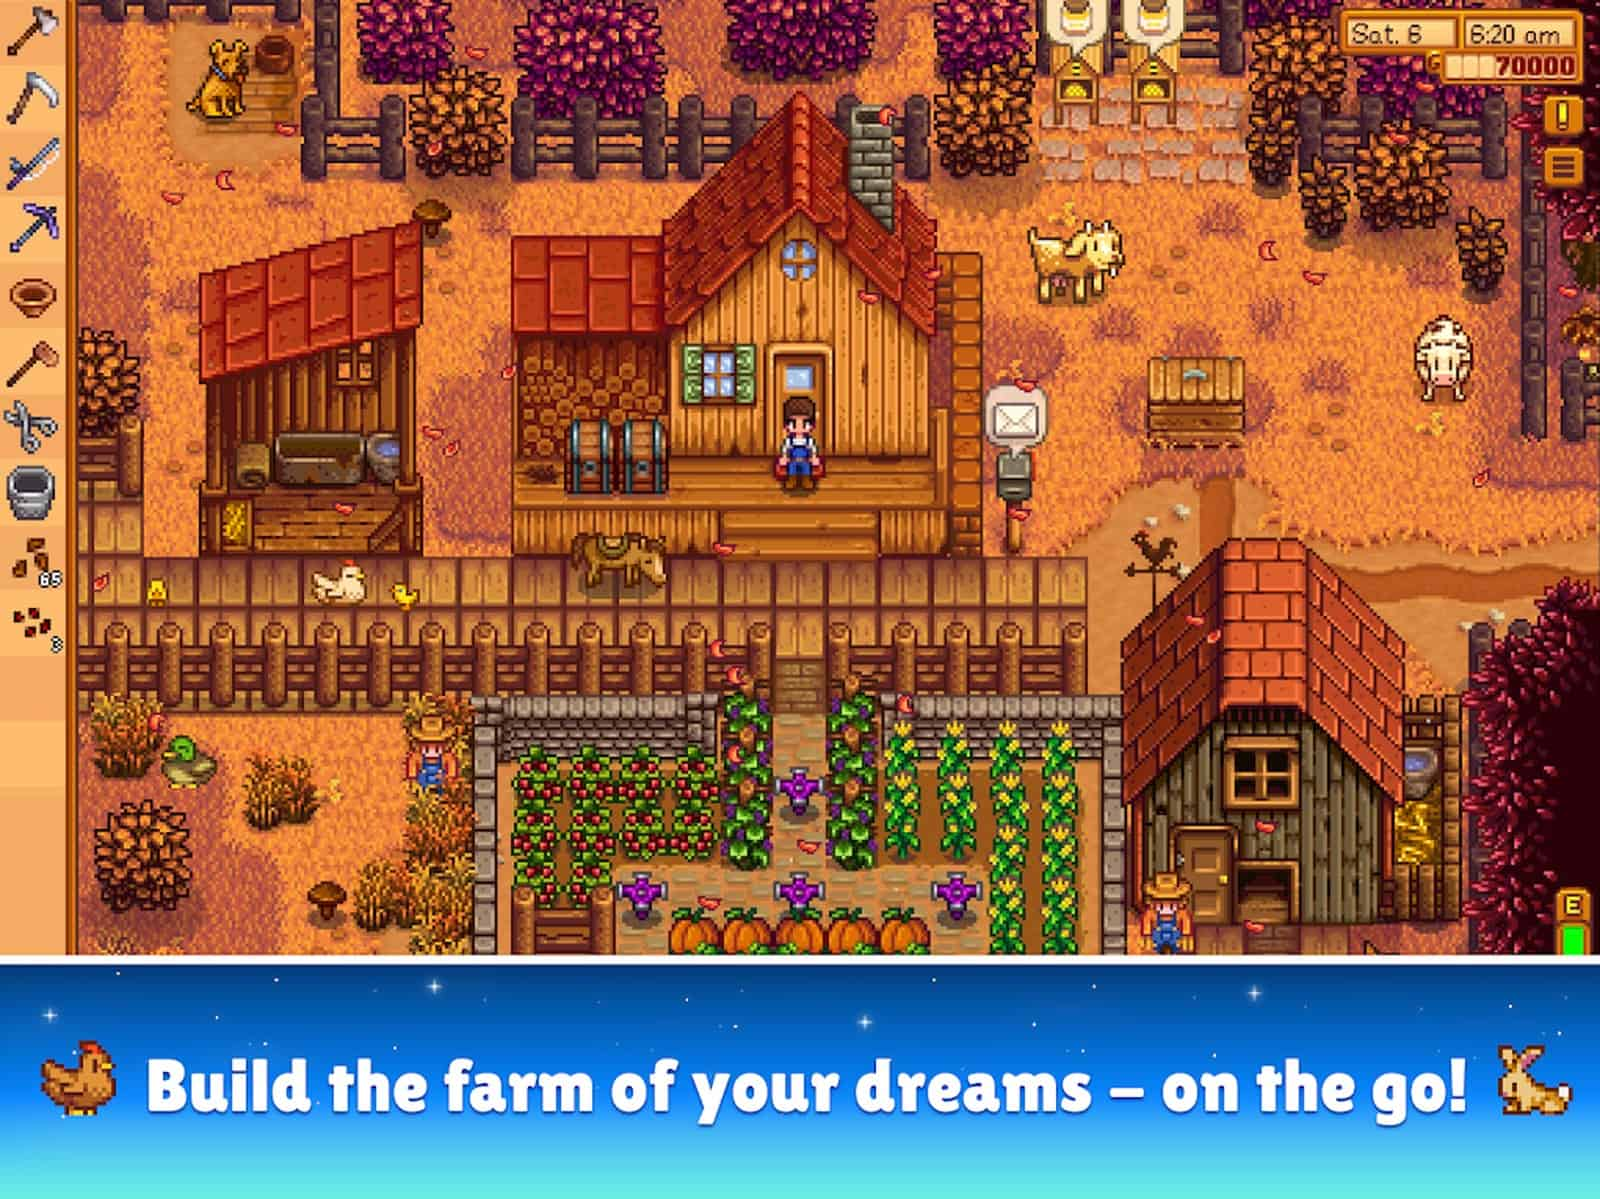 Stardew Valley official image 9